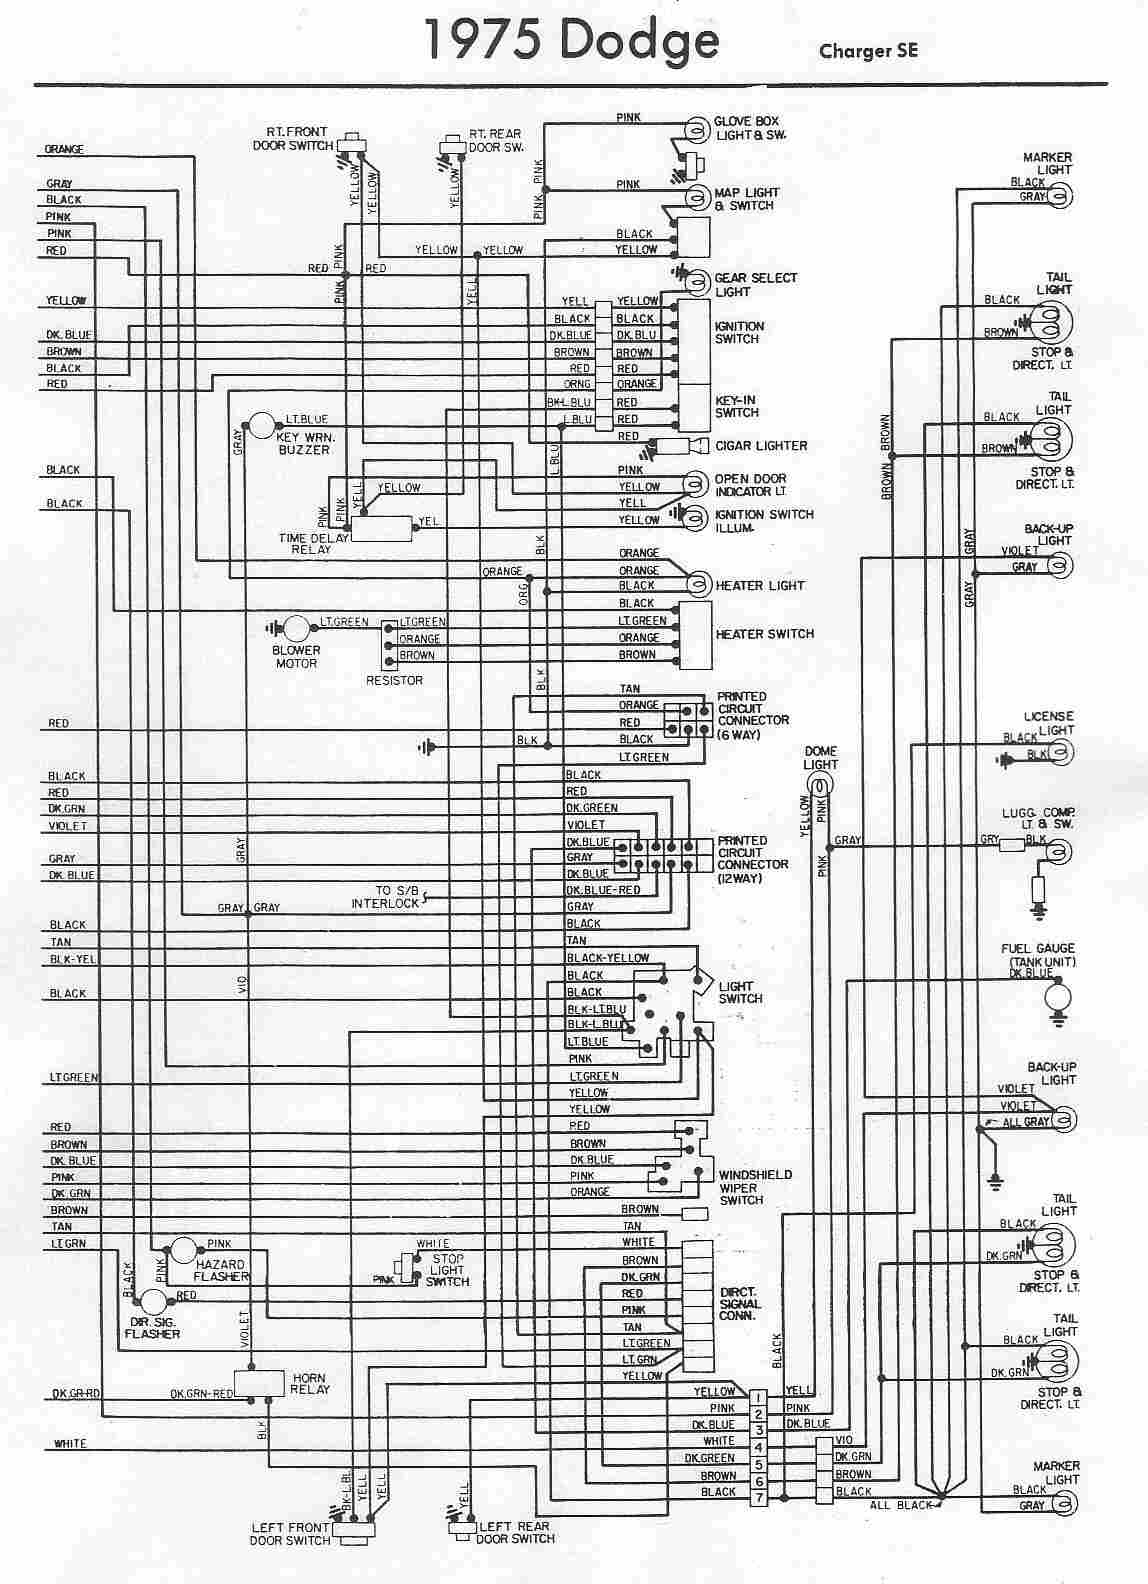 electrical wiring diagram of 1975 dodge charger?t=1508404771 dodge car manuals, wiring diagrams pdf & fault codes daimler sp250 wiring diagram at soozxer.org